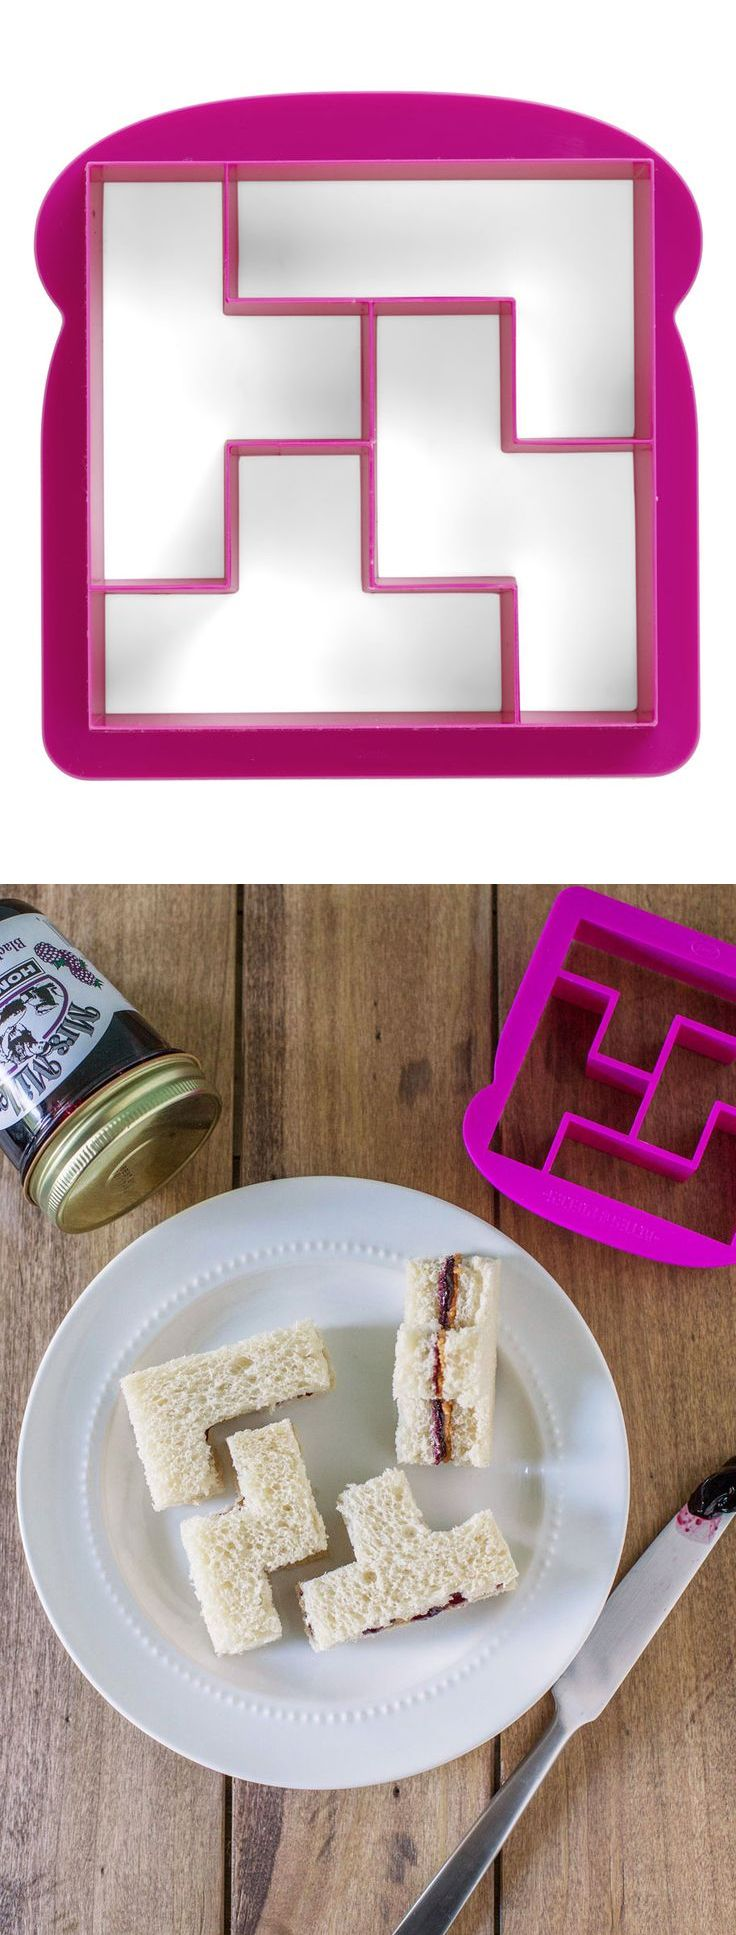 Tetris sandwich cutter - AWESOME! #product_design